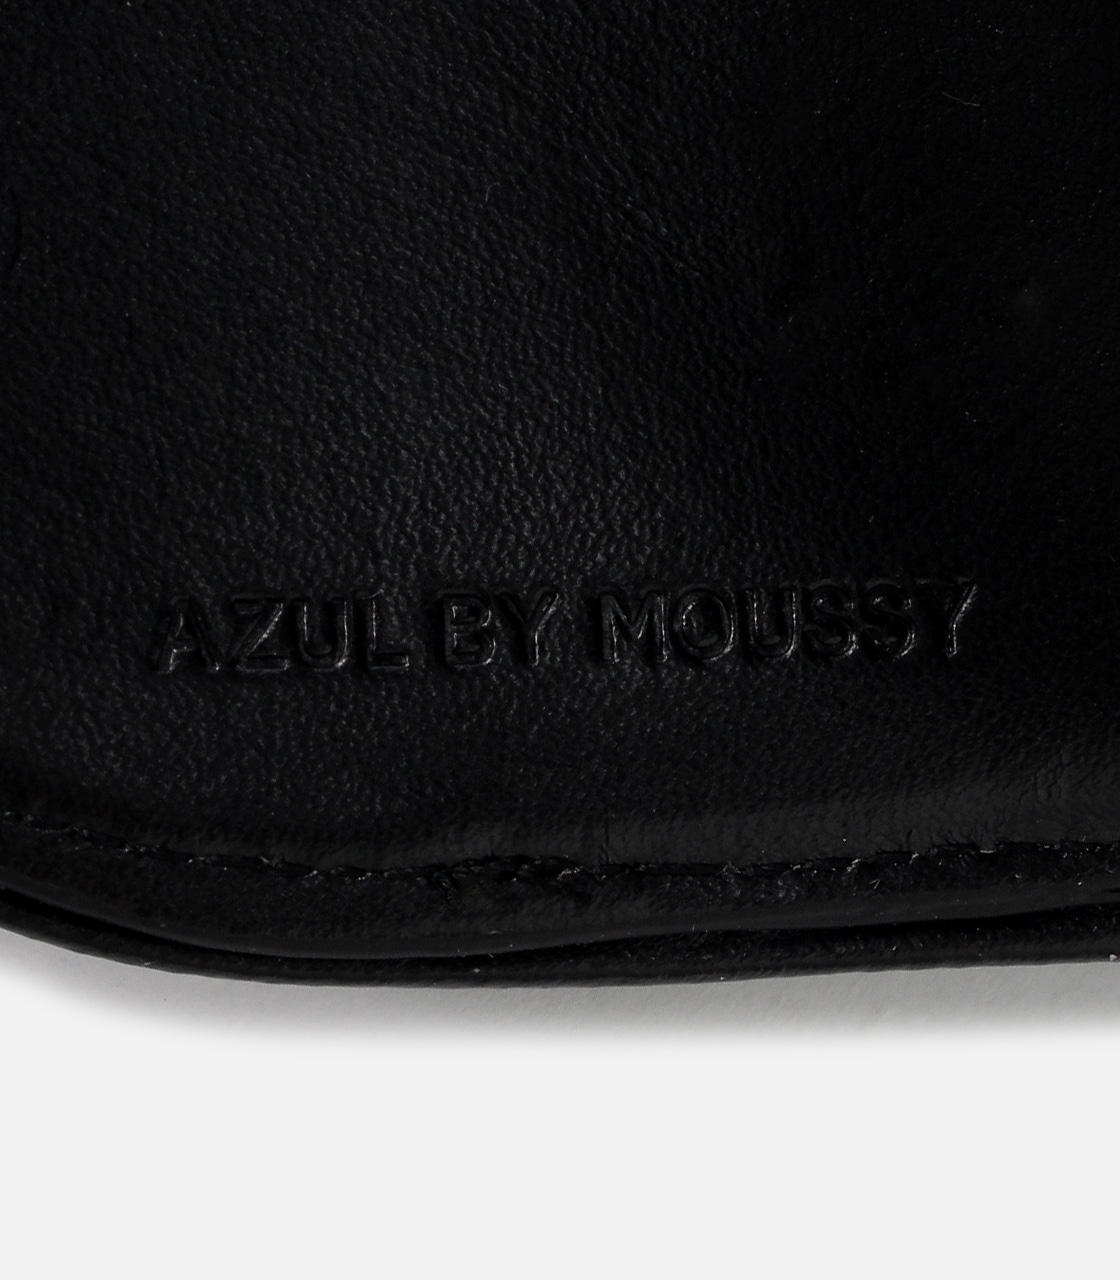 【AZUL BY MOUSSY】HARF ROUND WALLET 詳細画像 BLK 9